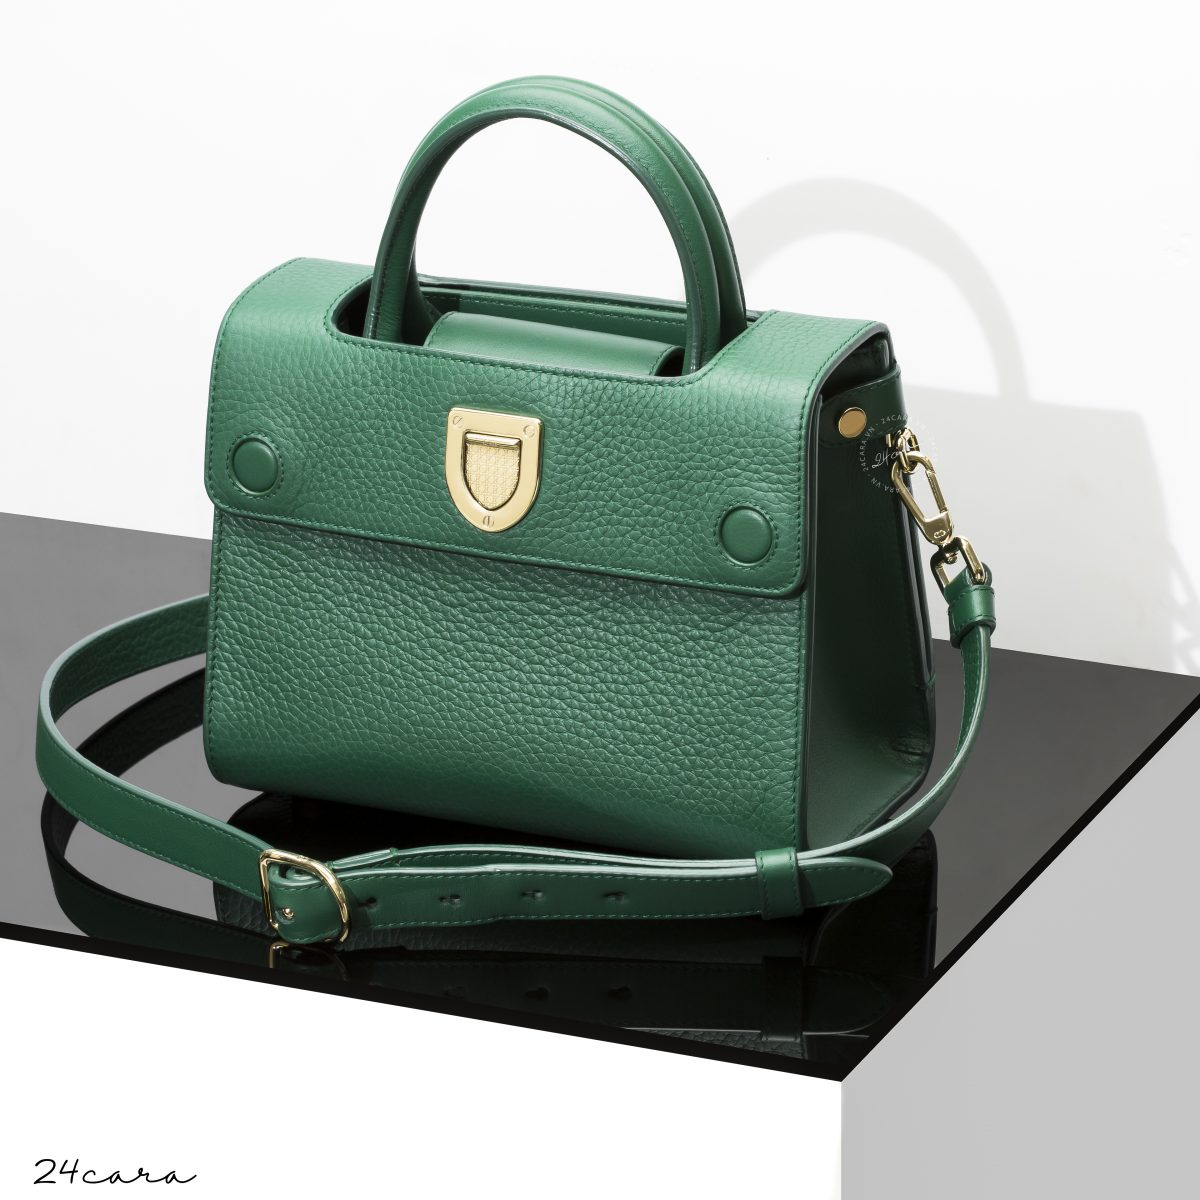 MINI DIOREVER BAG IN GREEN GRAINED CALFSKIN